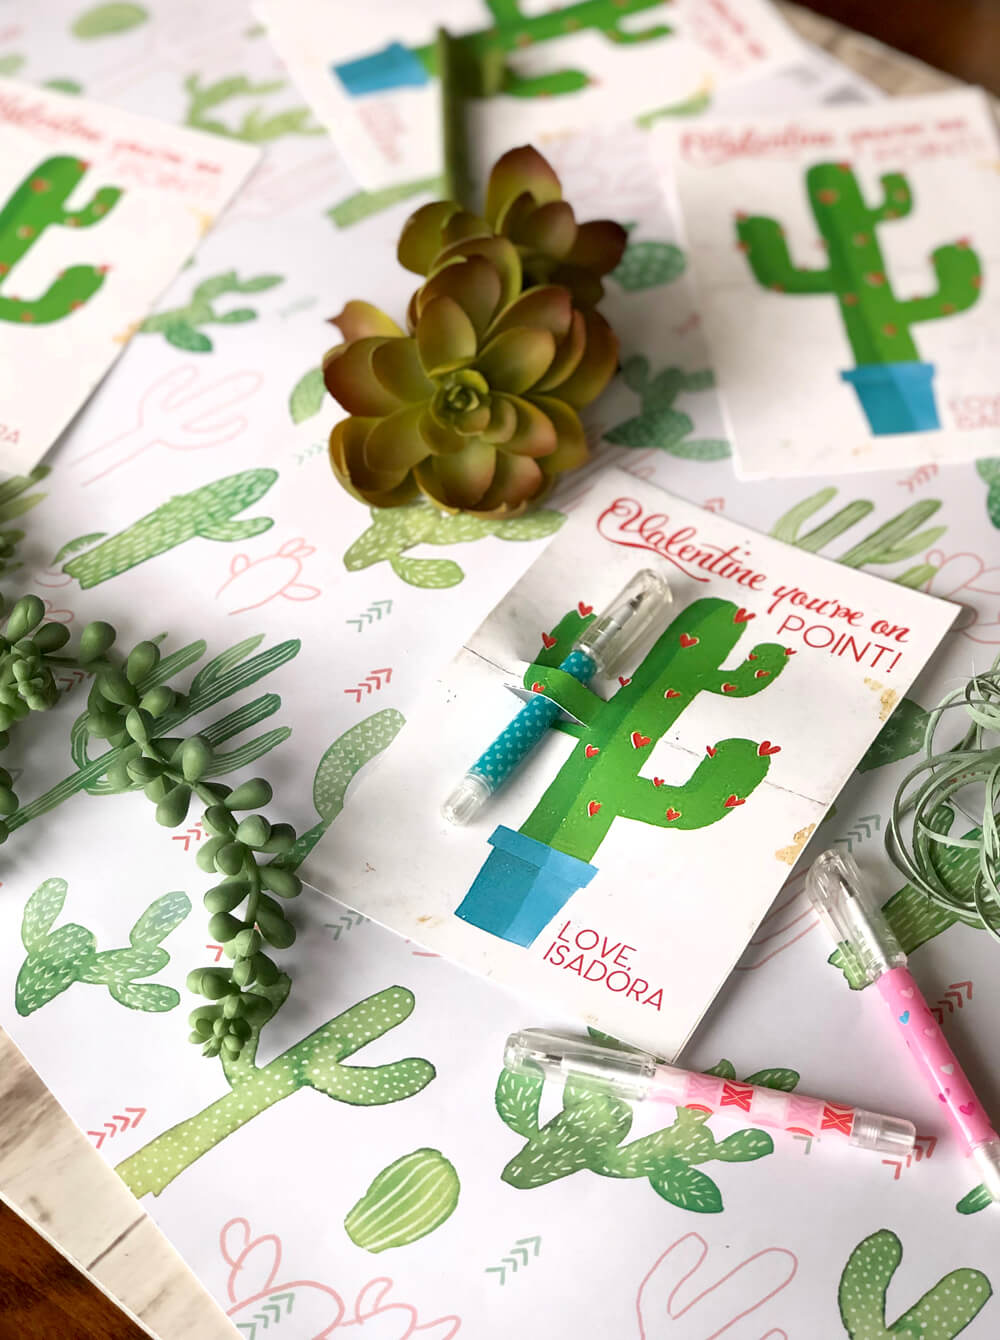 Easy and fun cactus valentines with ball point pen to stay on point